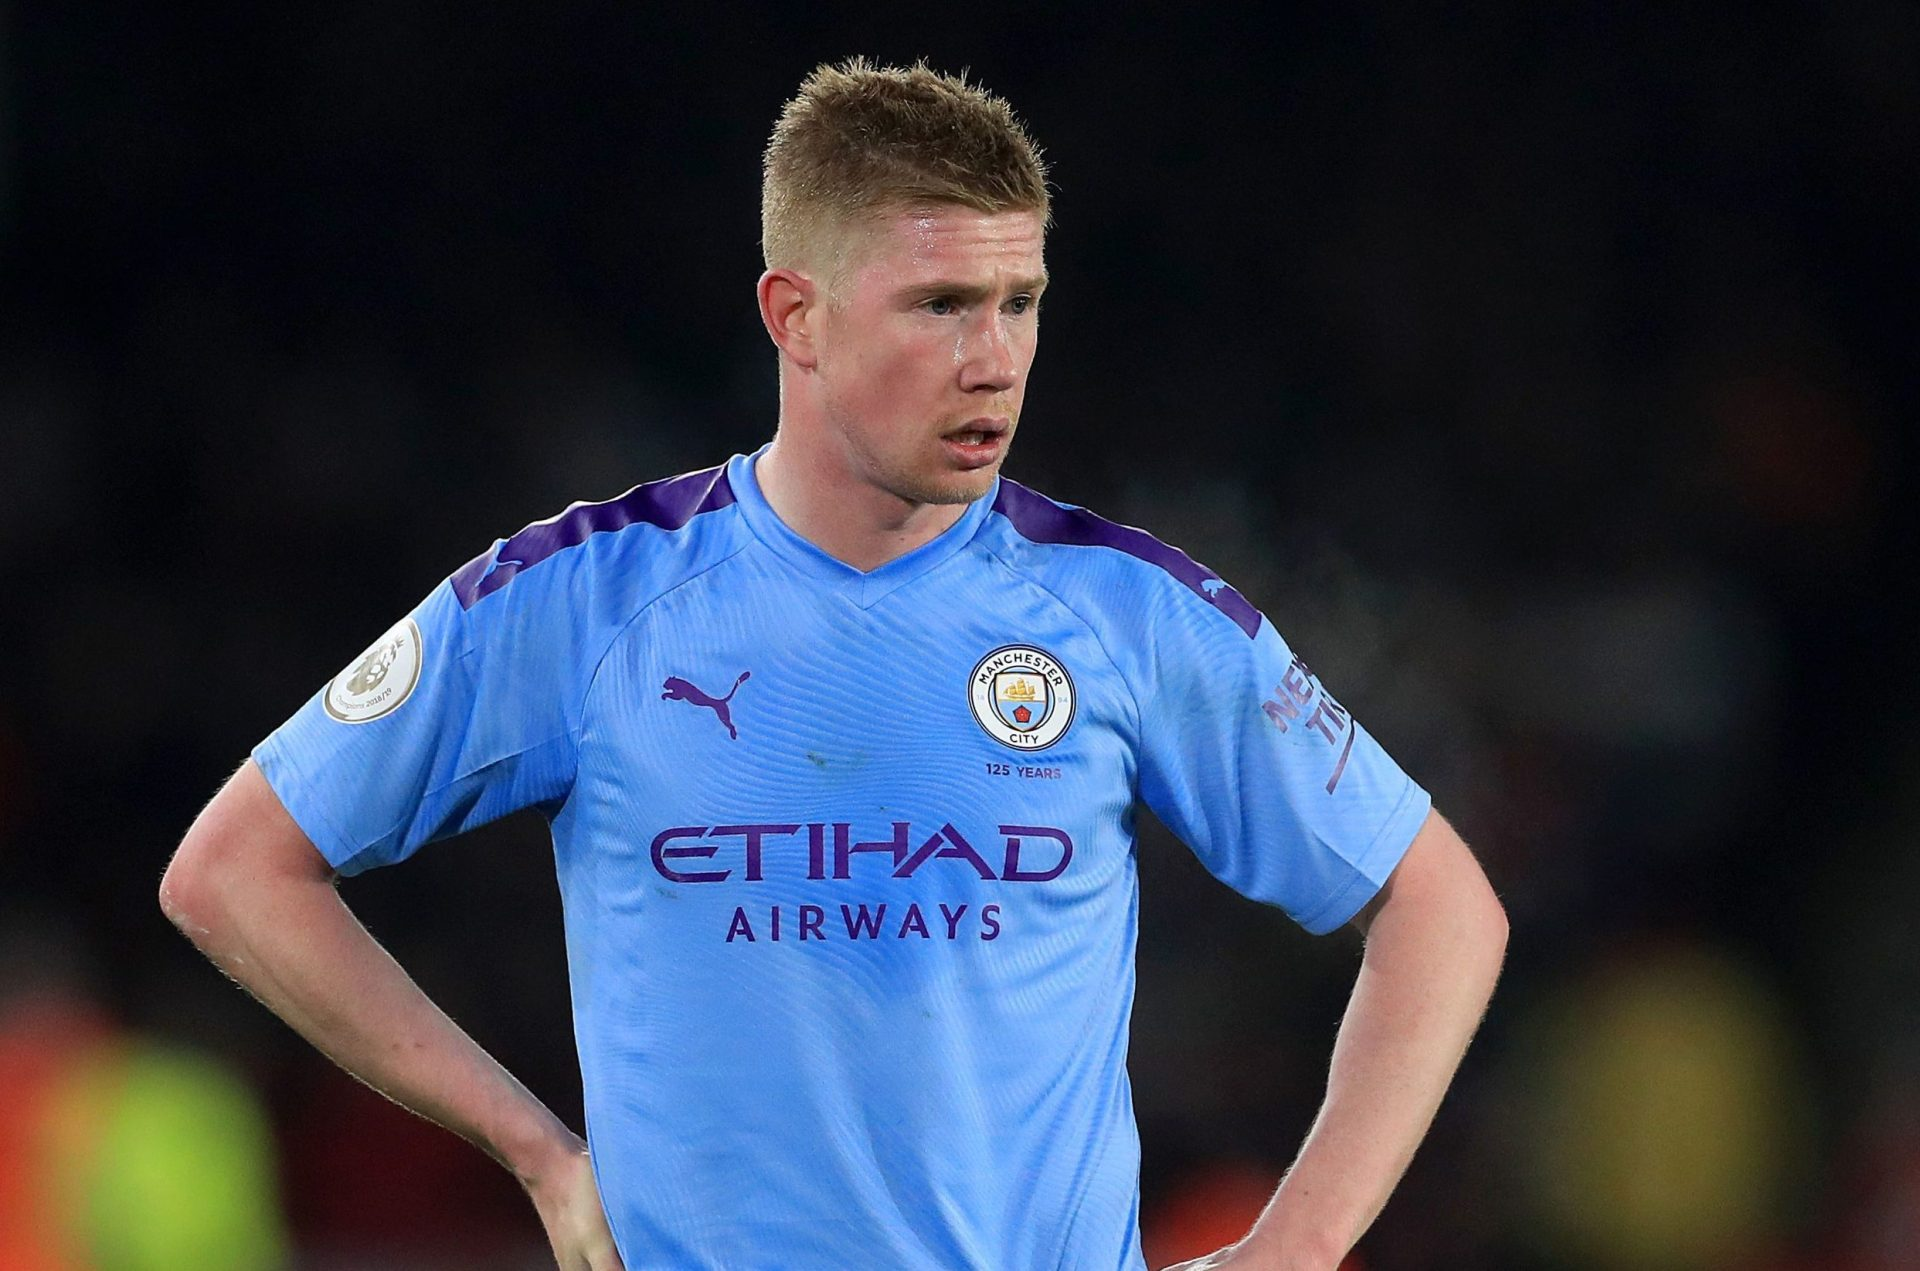 Nobody listens to the players: Kevin De Bruyne laments over hectic schedule - THE SPORTS ROOM